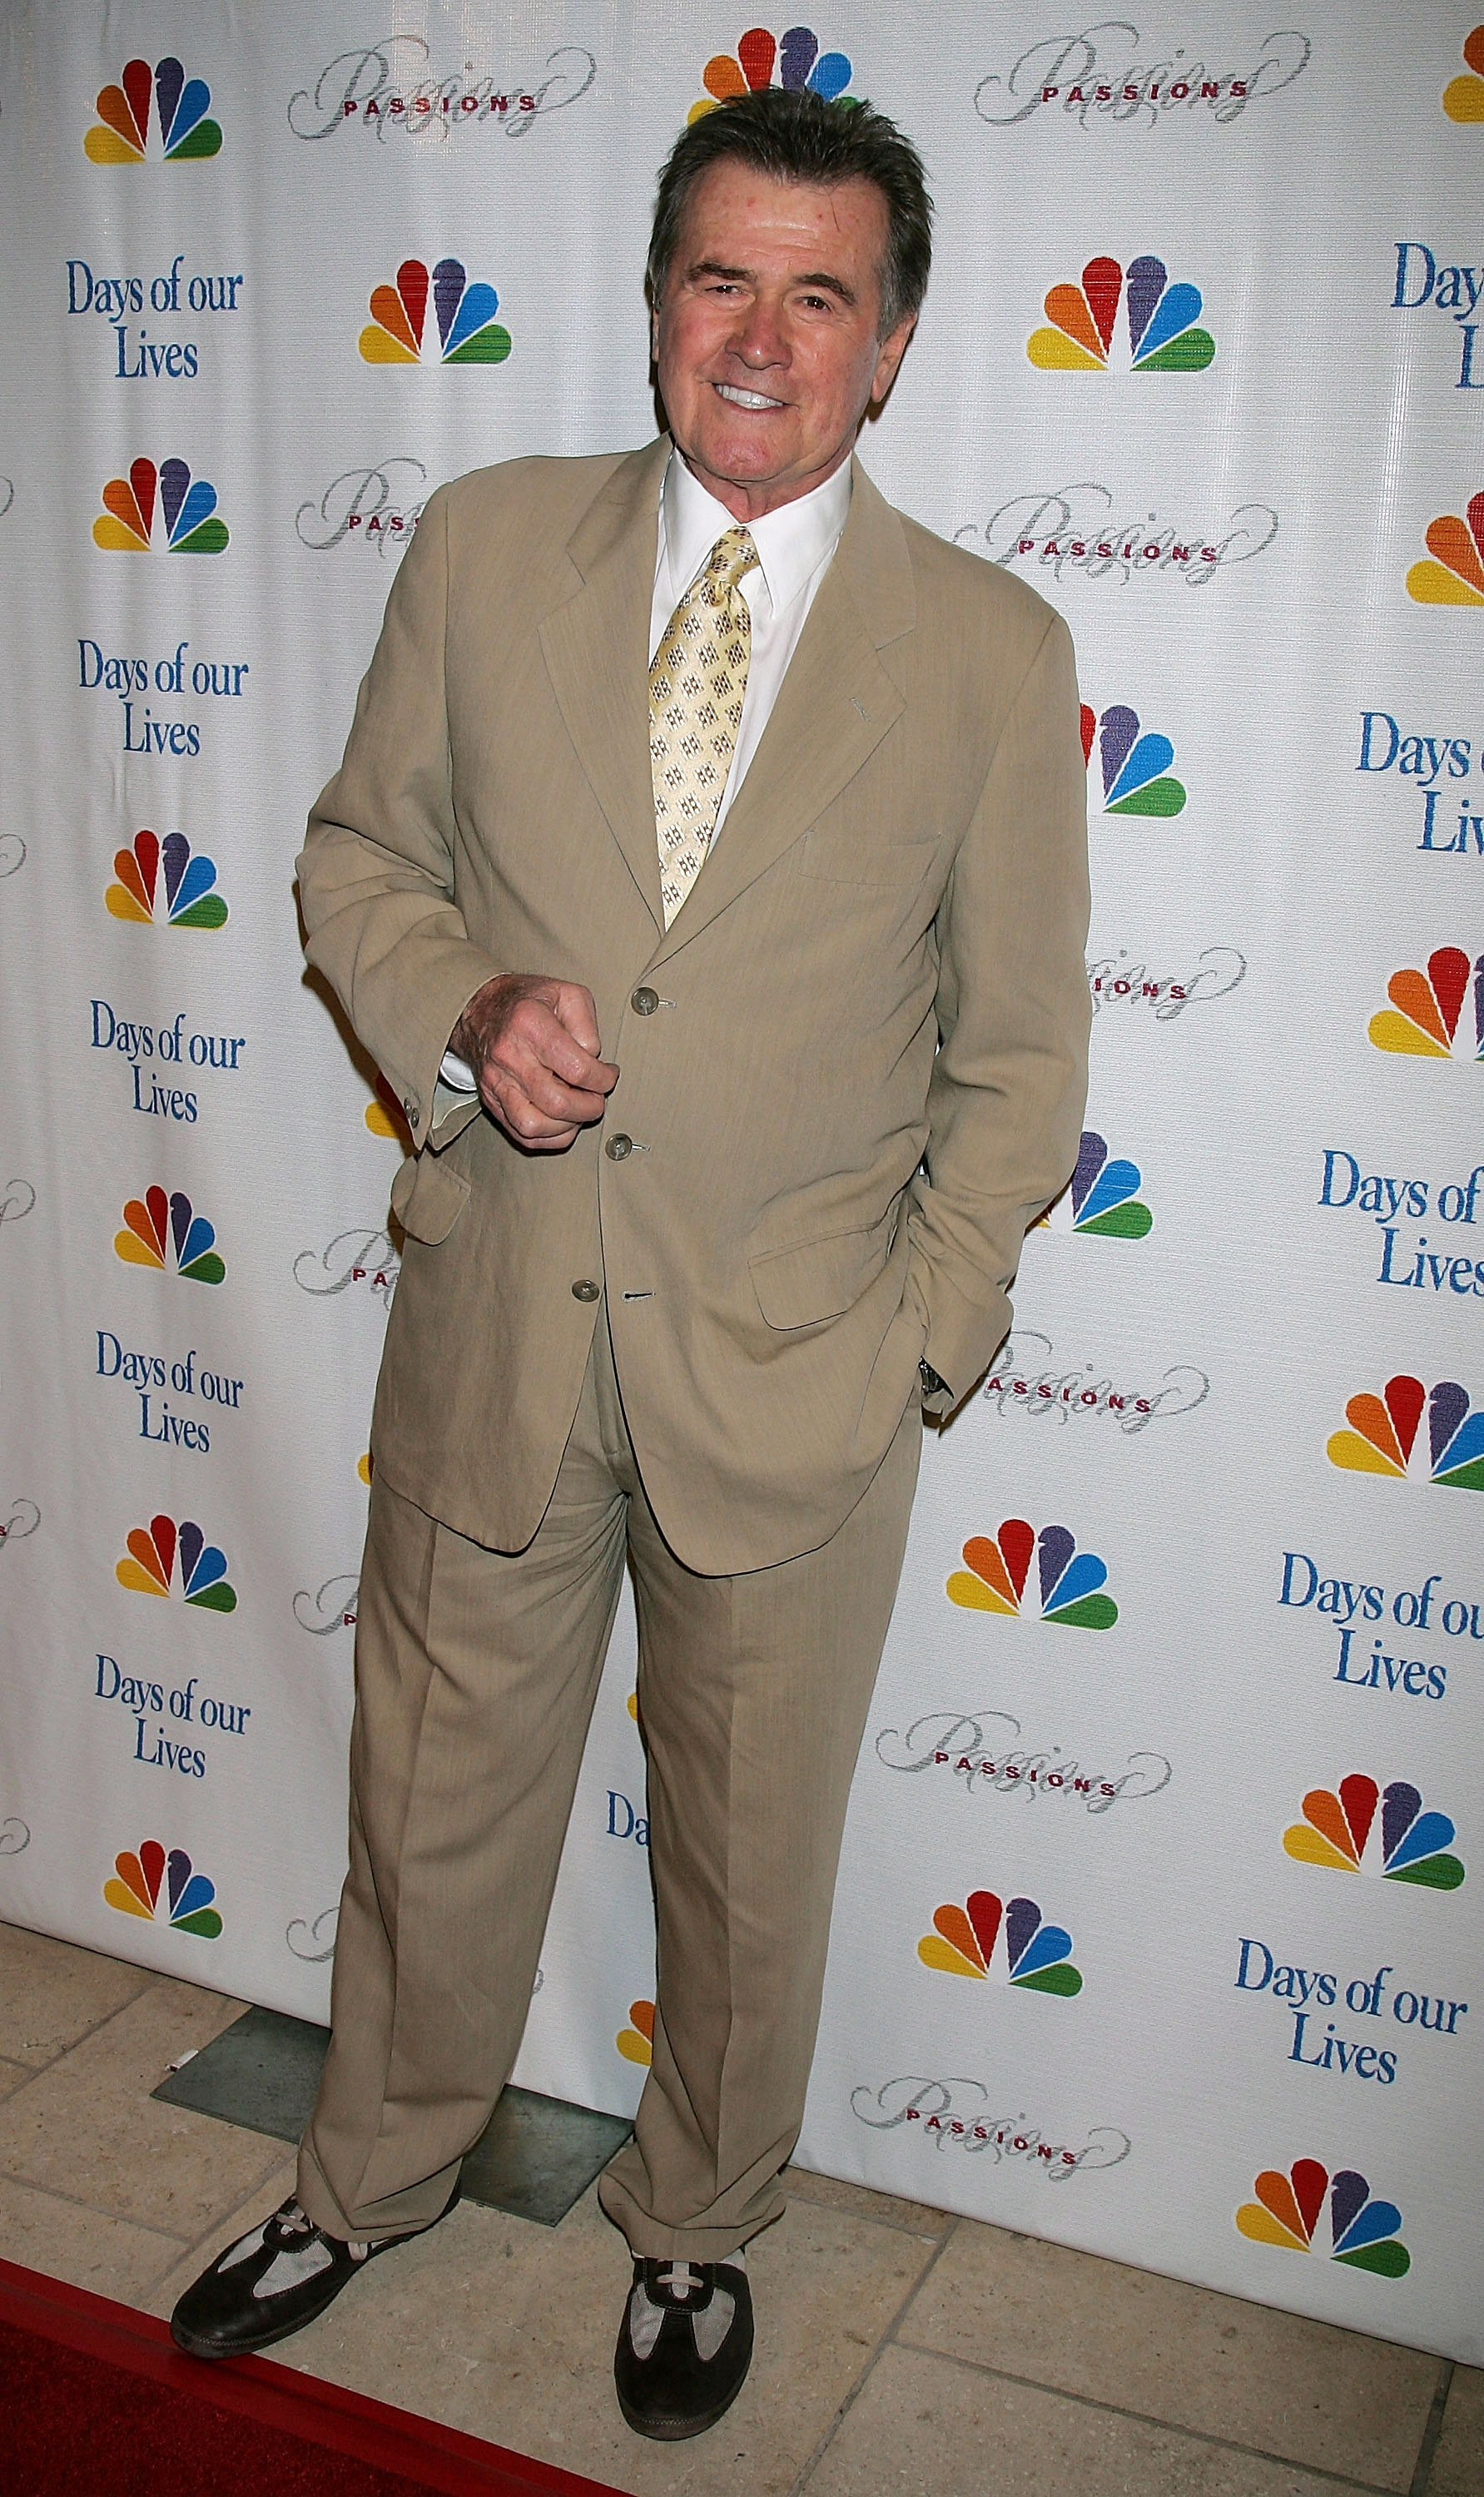 """John Reilly attends NBC's """"Days of Our Lives"""" and """"Passions"""" pre-Emmy party on April 27, 2006 in Burbank, California. 